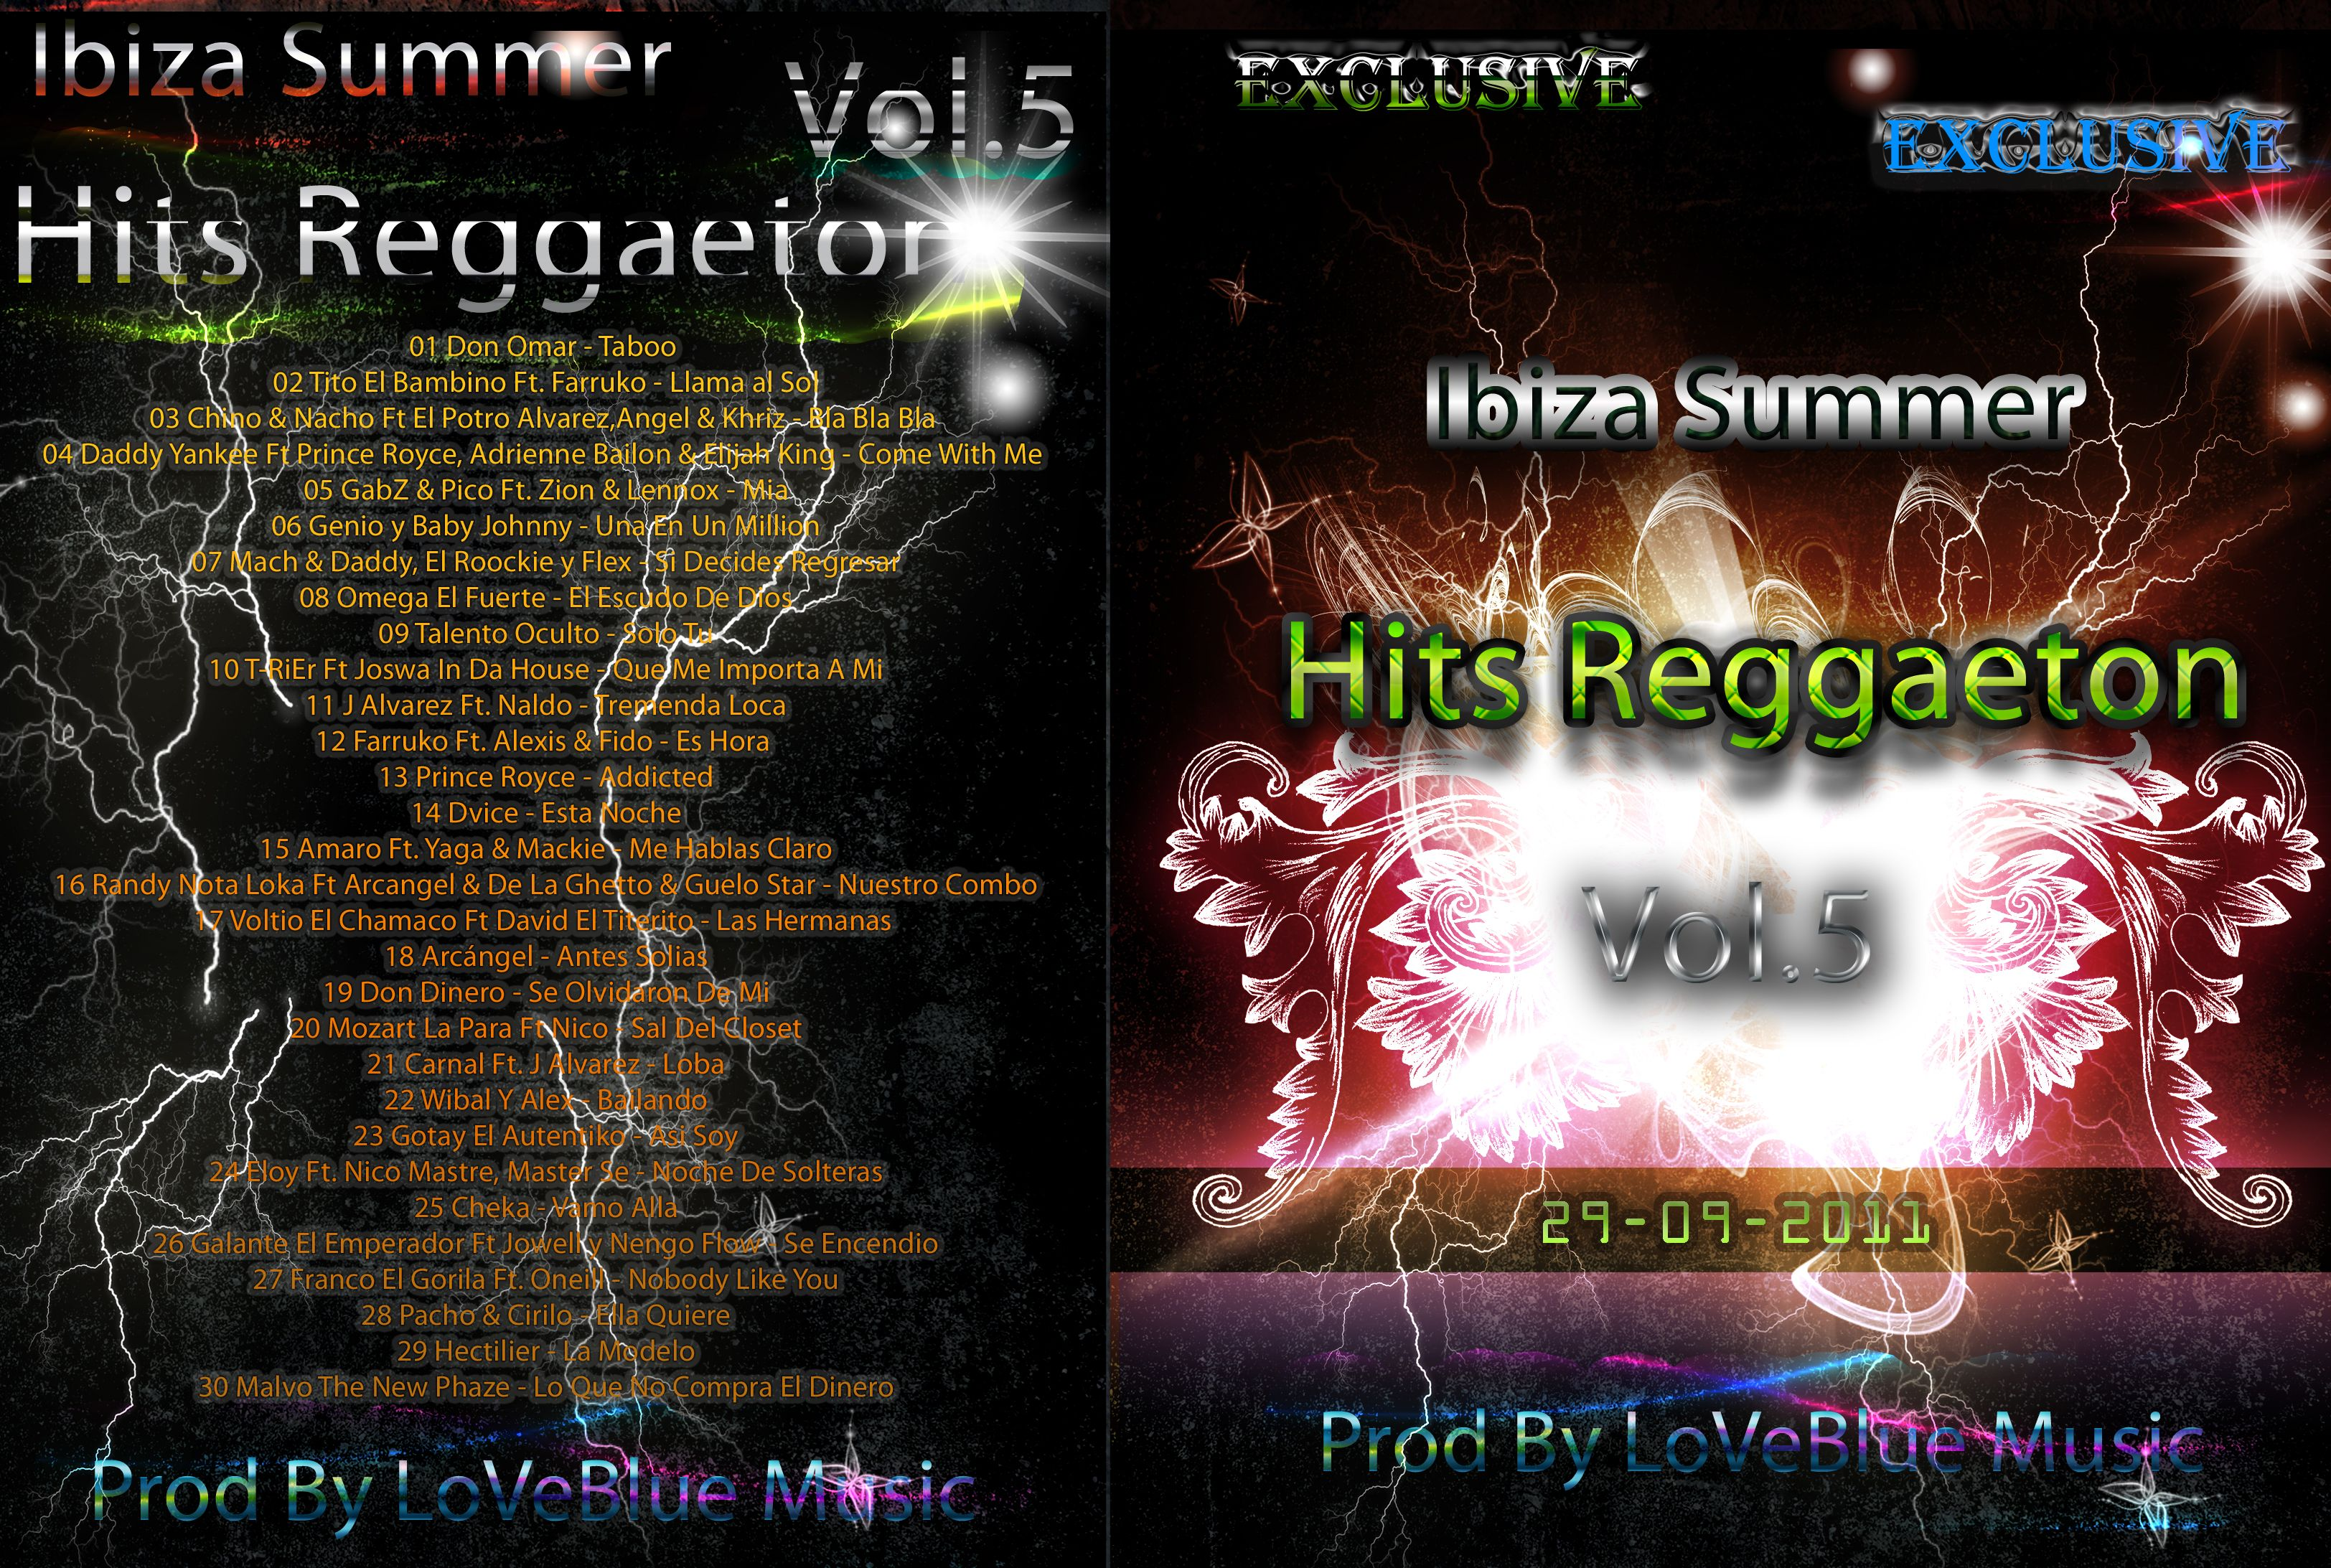 V.A - Ibiza Summer Hits Reggaeton Vol.5 2011 (CD ORIGINAL)